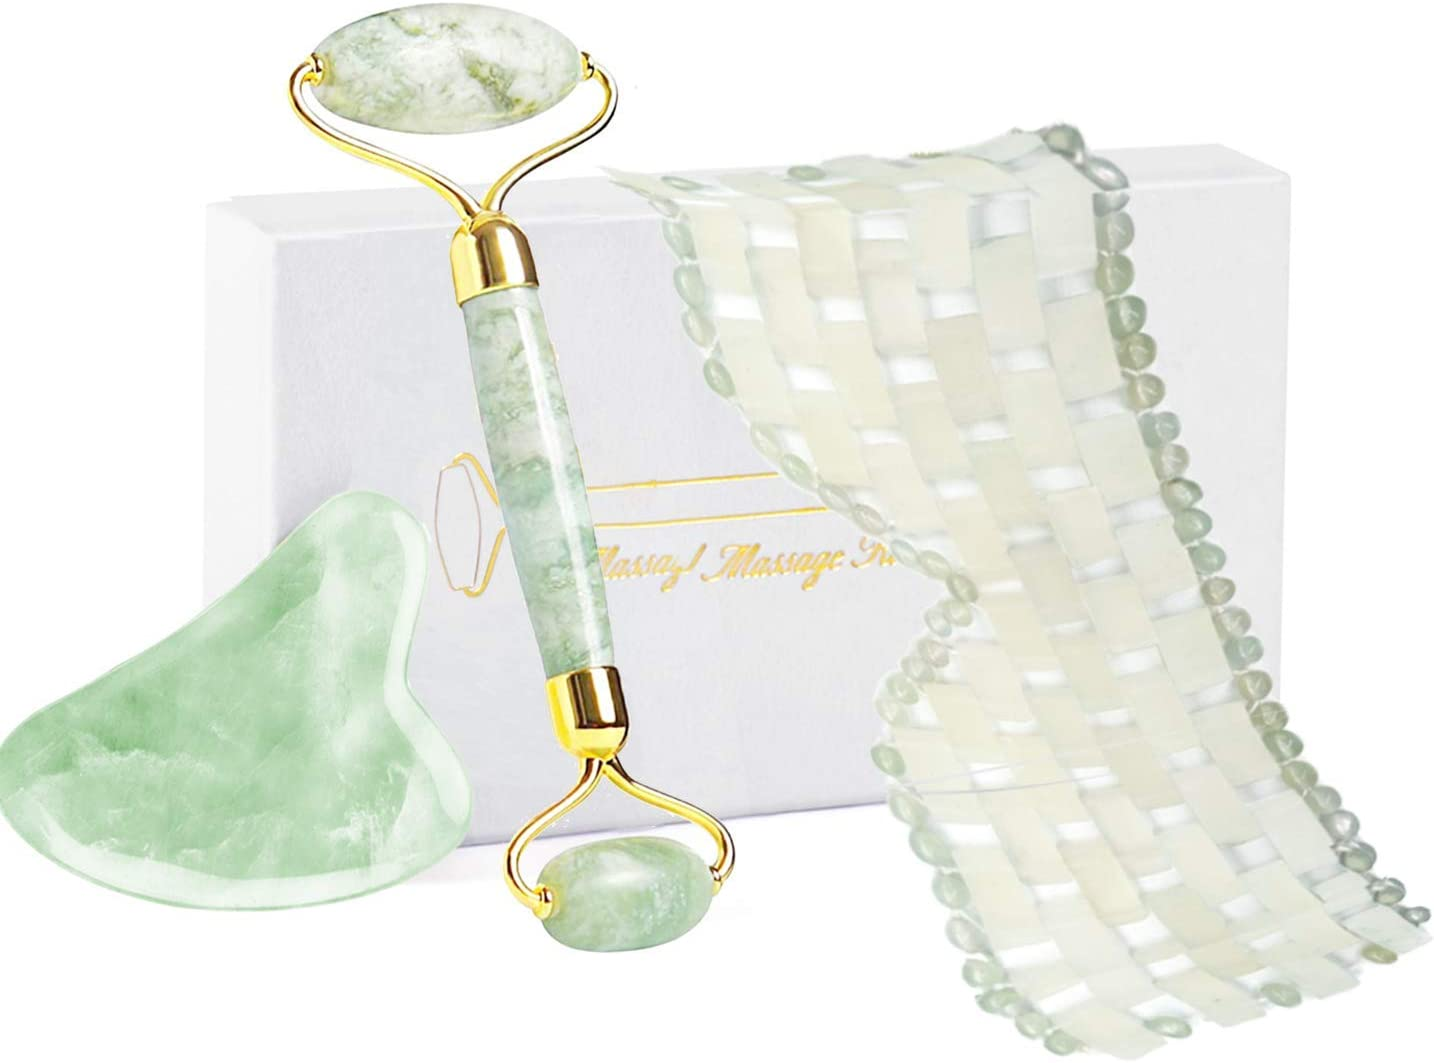 Jade Face Roller and Gua Sha Jade Face Roller Eye and Face Skin Care Tool WAS £16.99 NOW £11.30 w/code YRJ84W3F @ Amazon